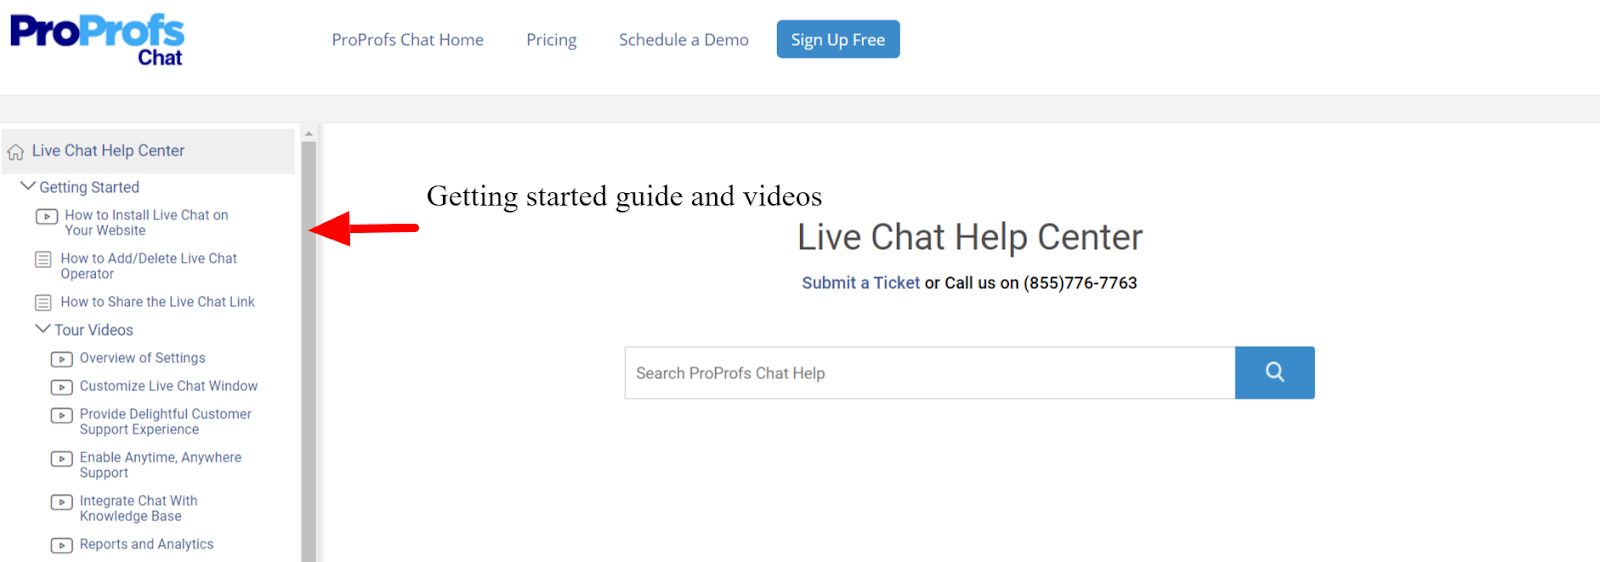 ProProfs Live Chat Help Centre